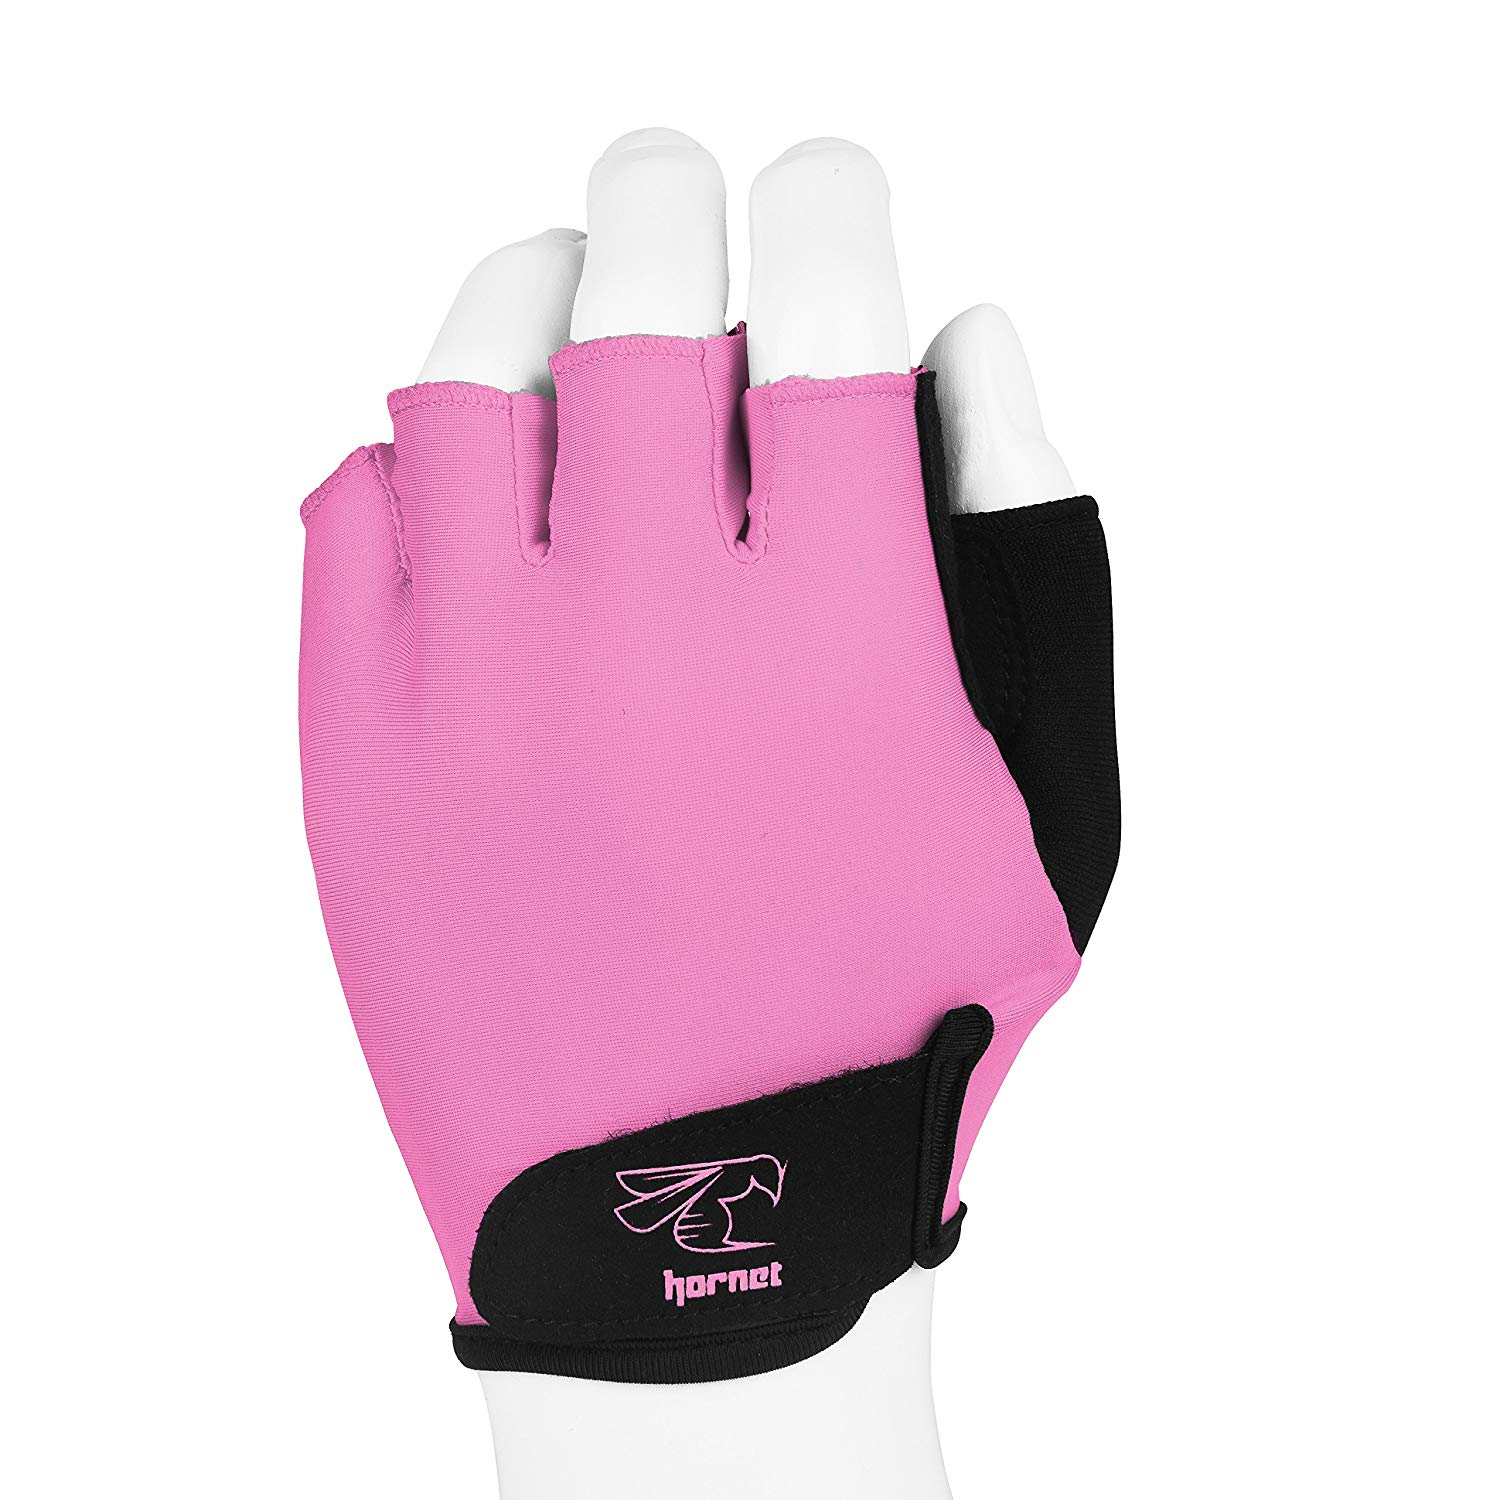 Hornet Watersports Light Pink Rowing Gloves for Women by Ideal for Indoor Kayak,